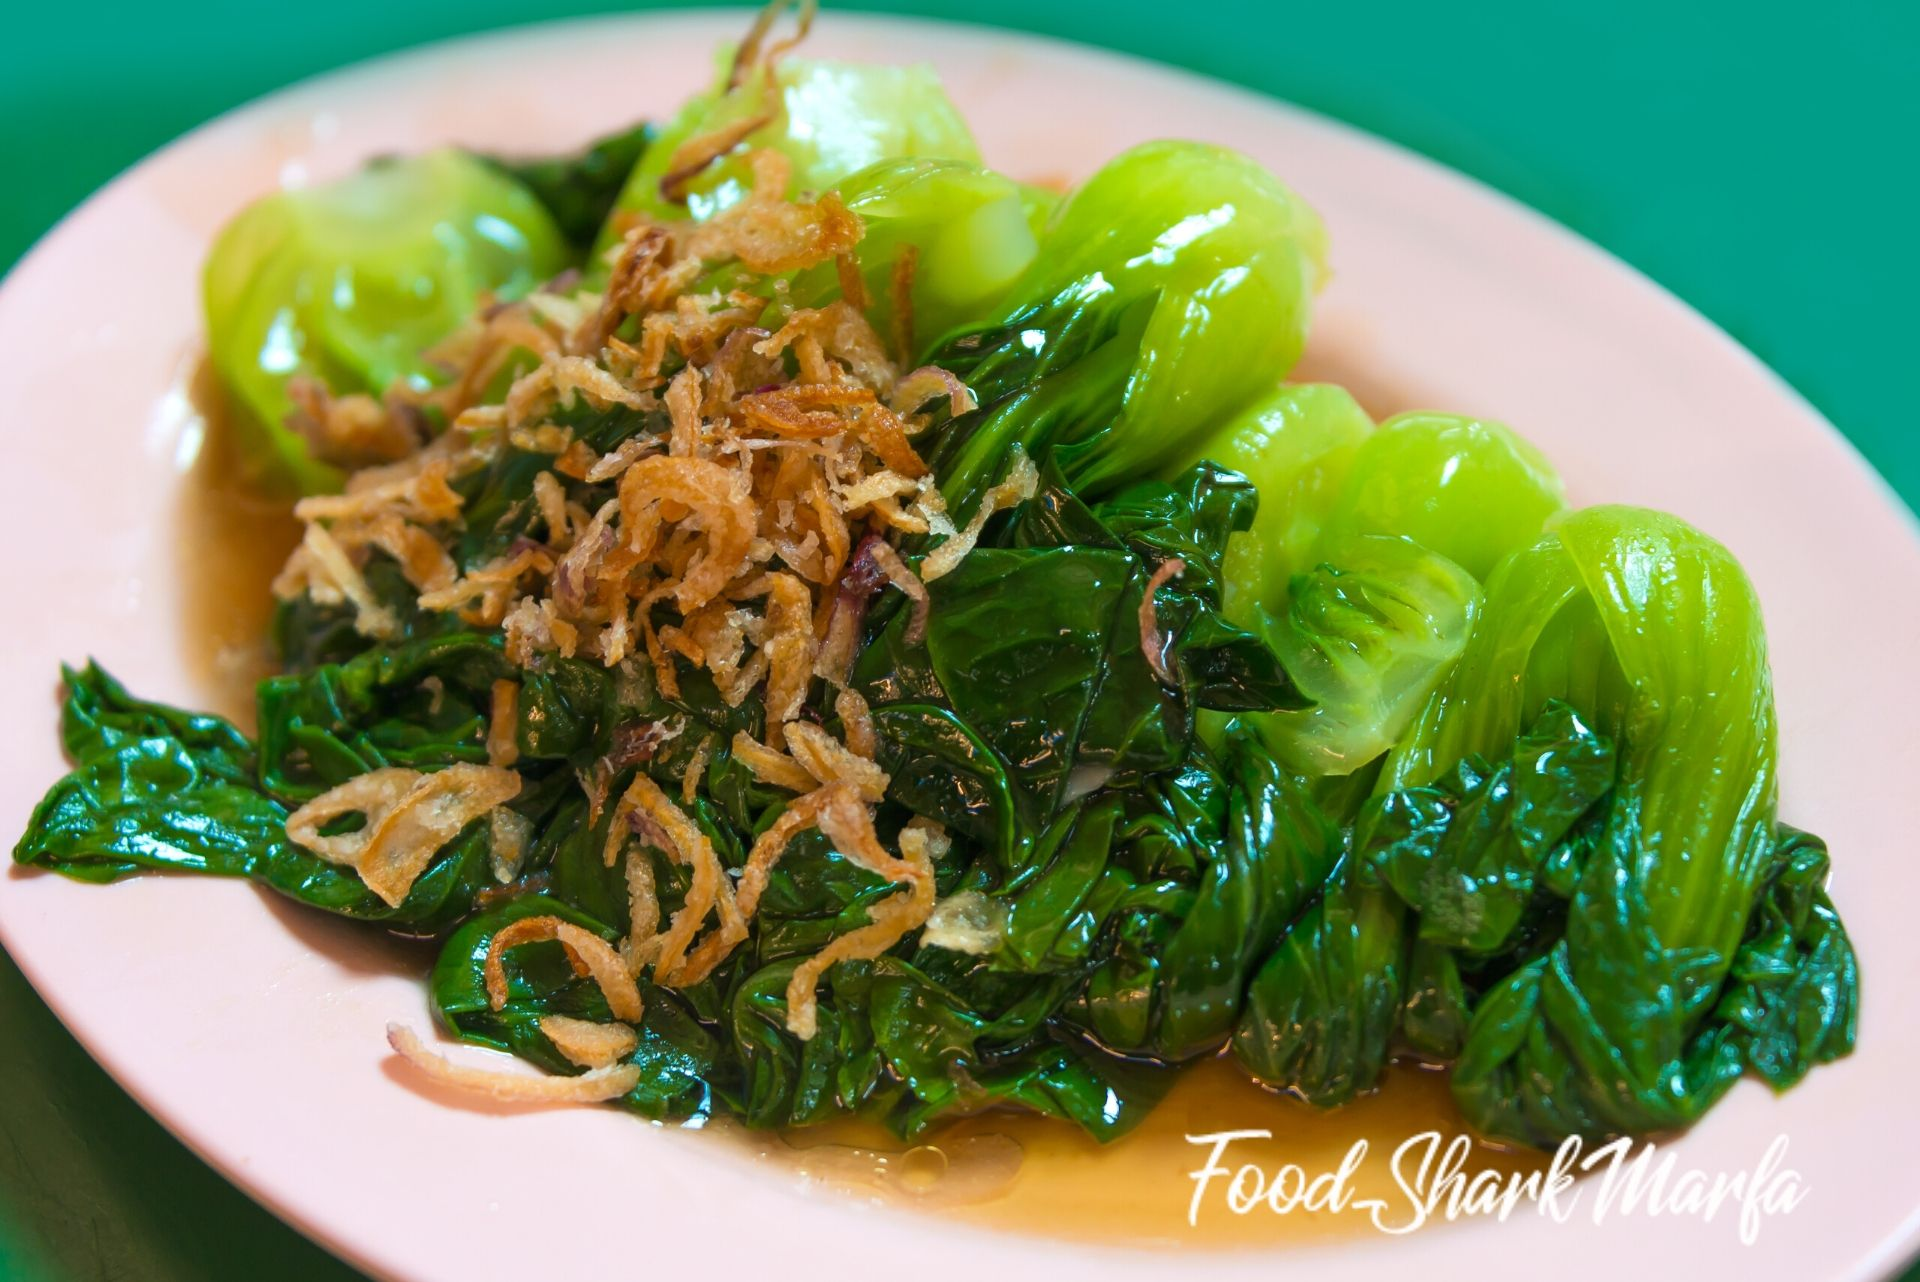 Fried vegetable in oil oyster sauce